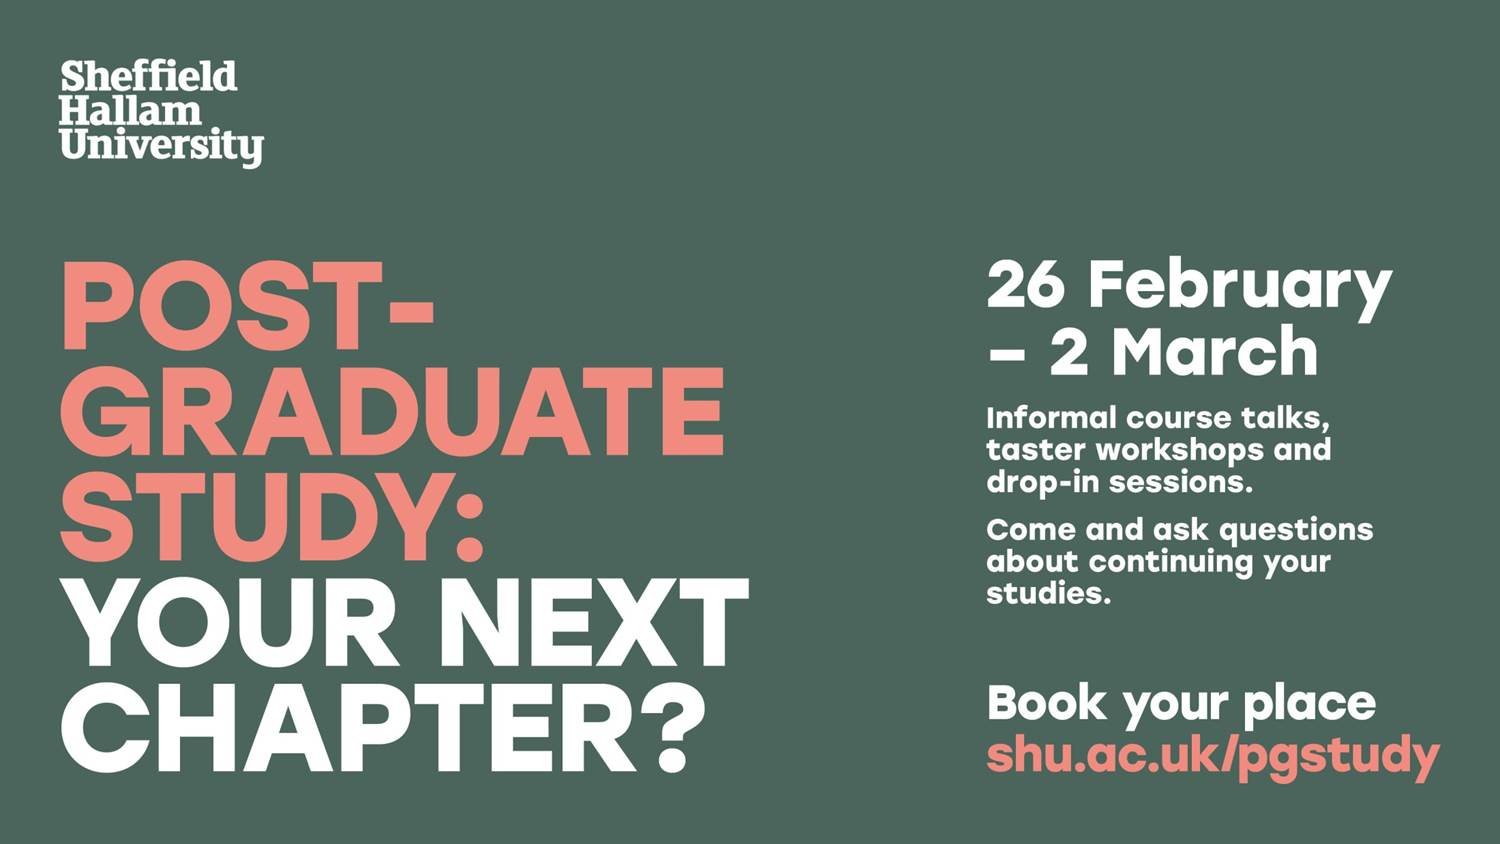 Post-graduate study: your next chapter?